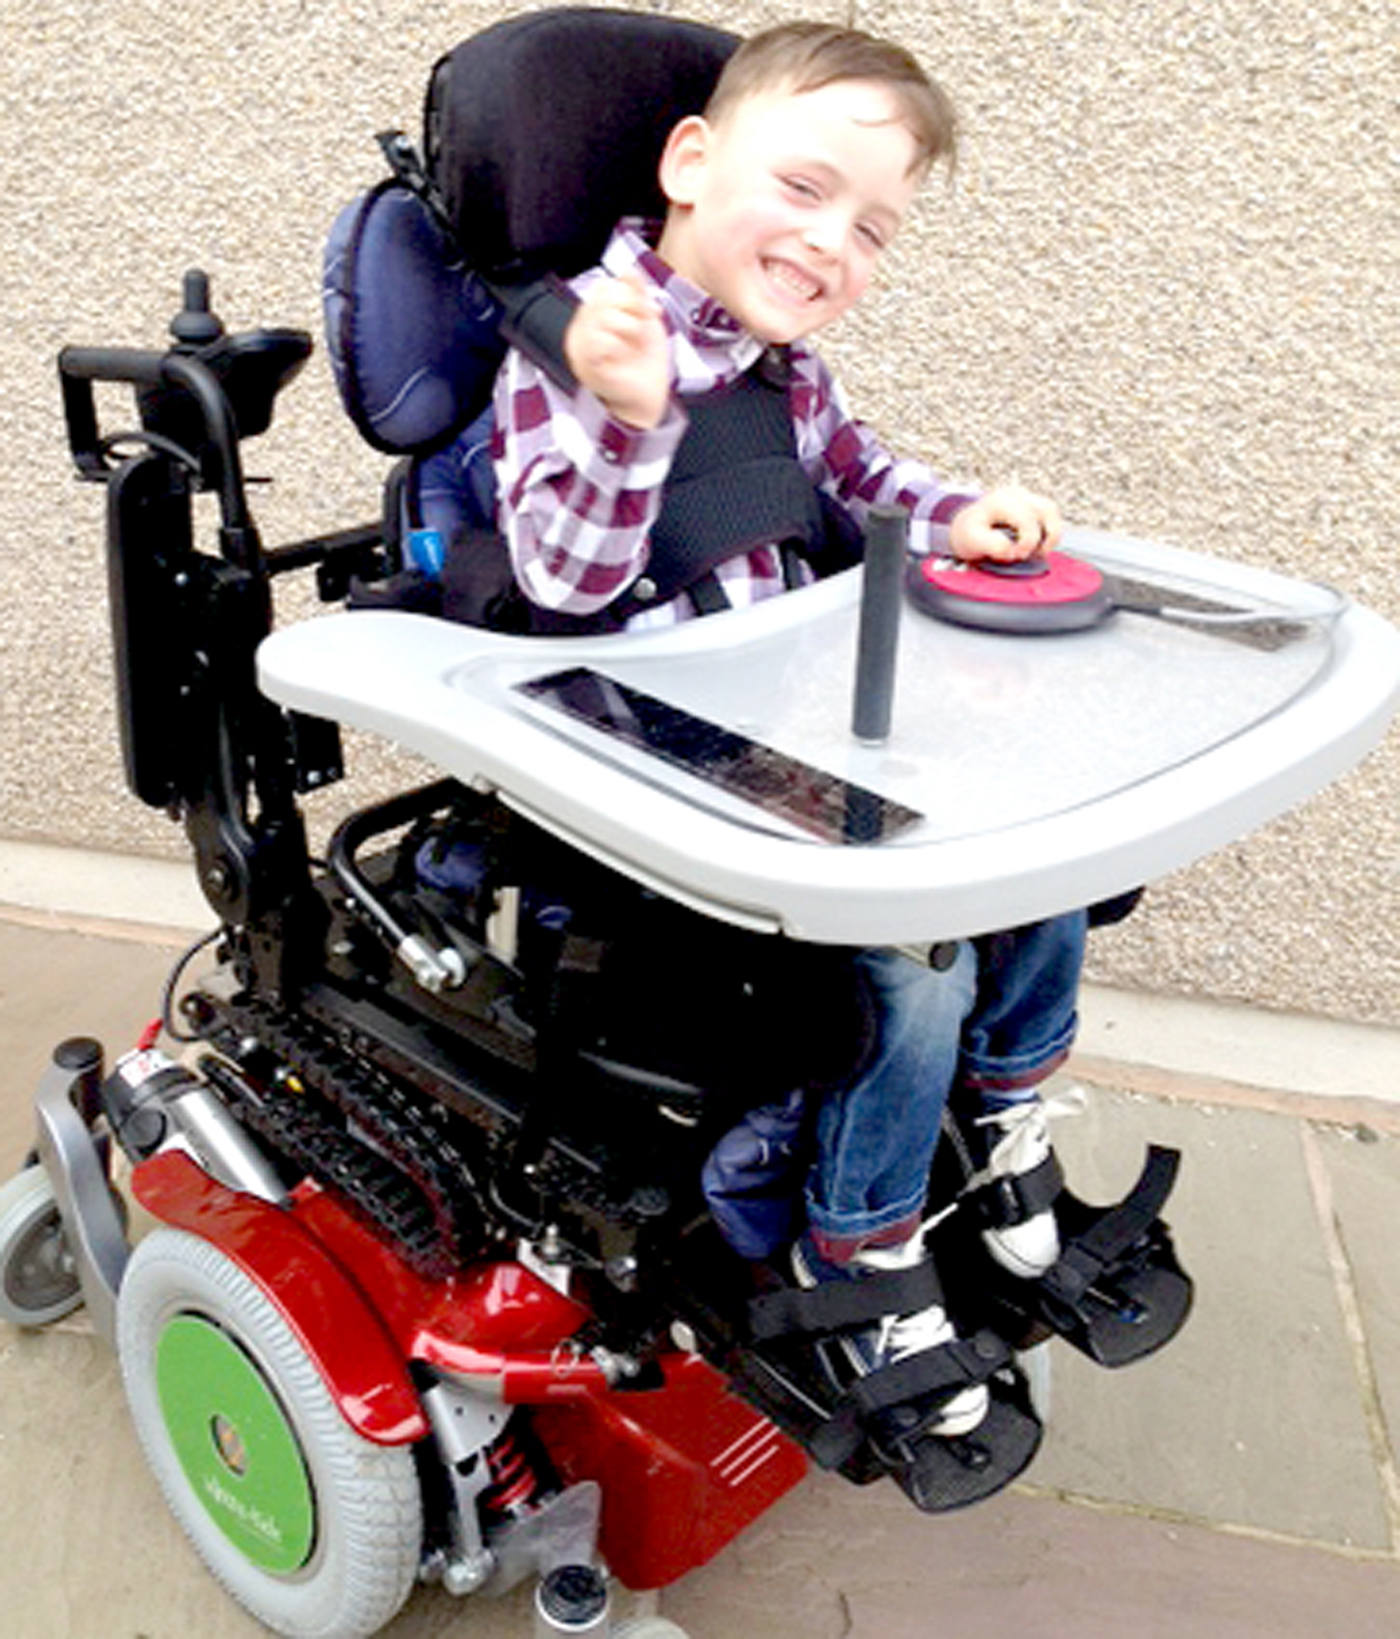 Noah Pickard in his wheelchair